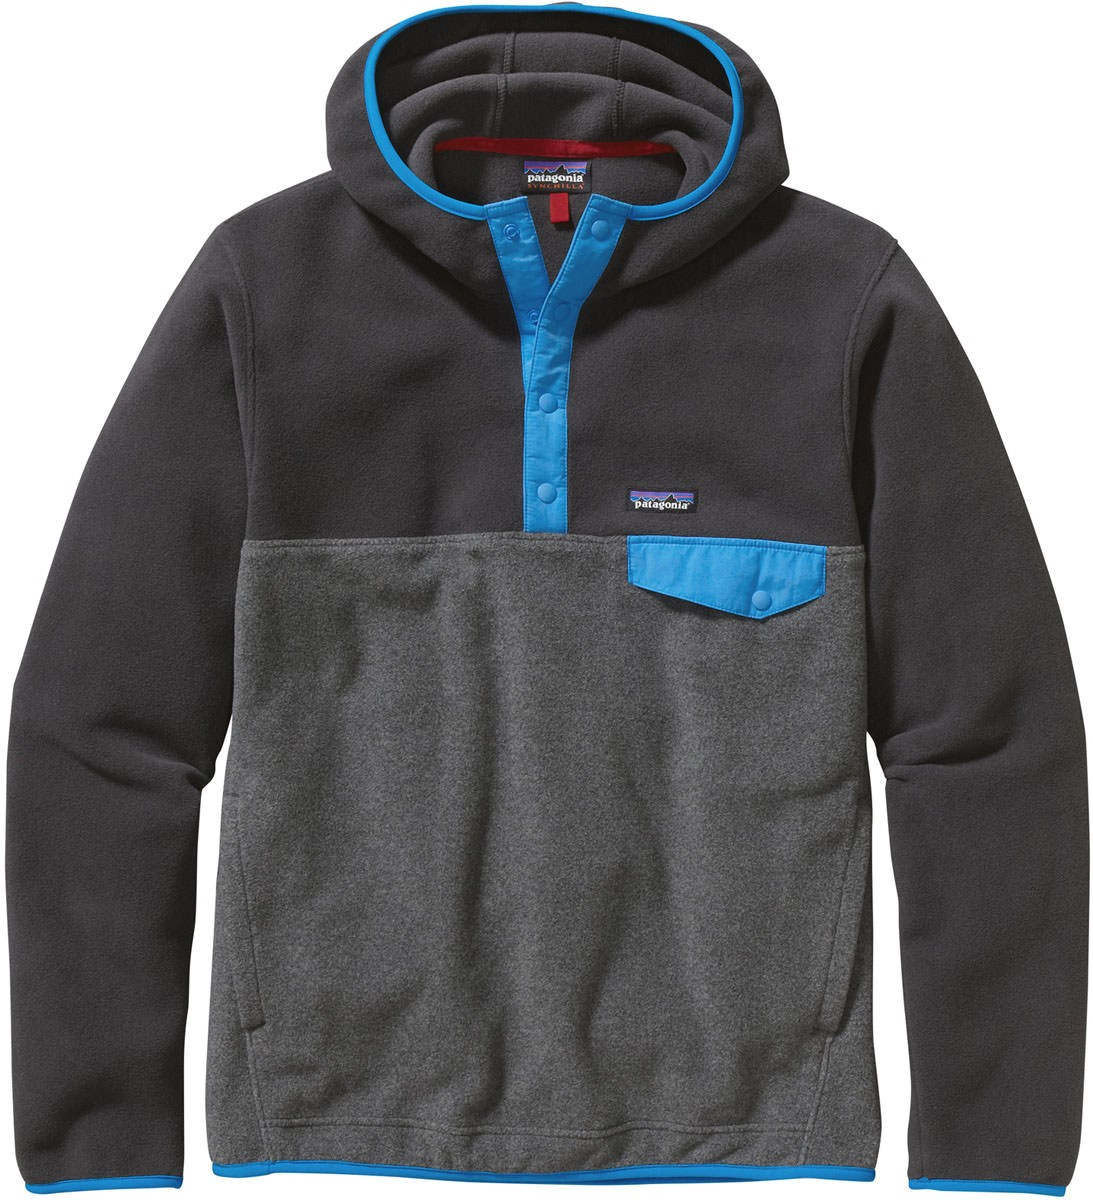 Patagonia Synchilla | Patagonia Synchilla Snap T Pullover Womens | Patagonia Synchilla Fleece Vest